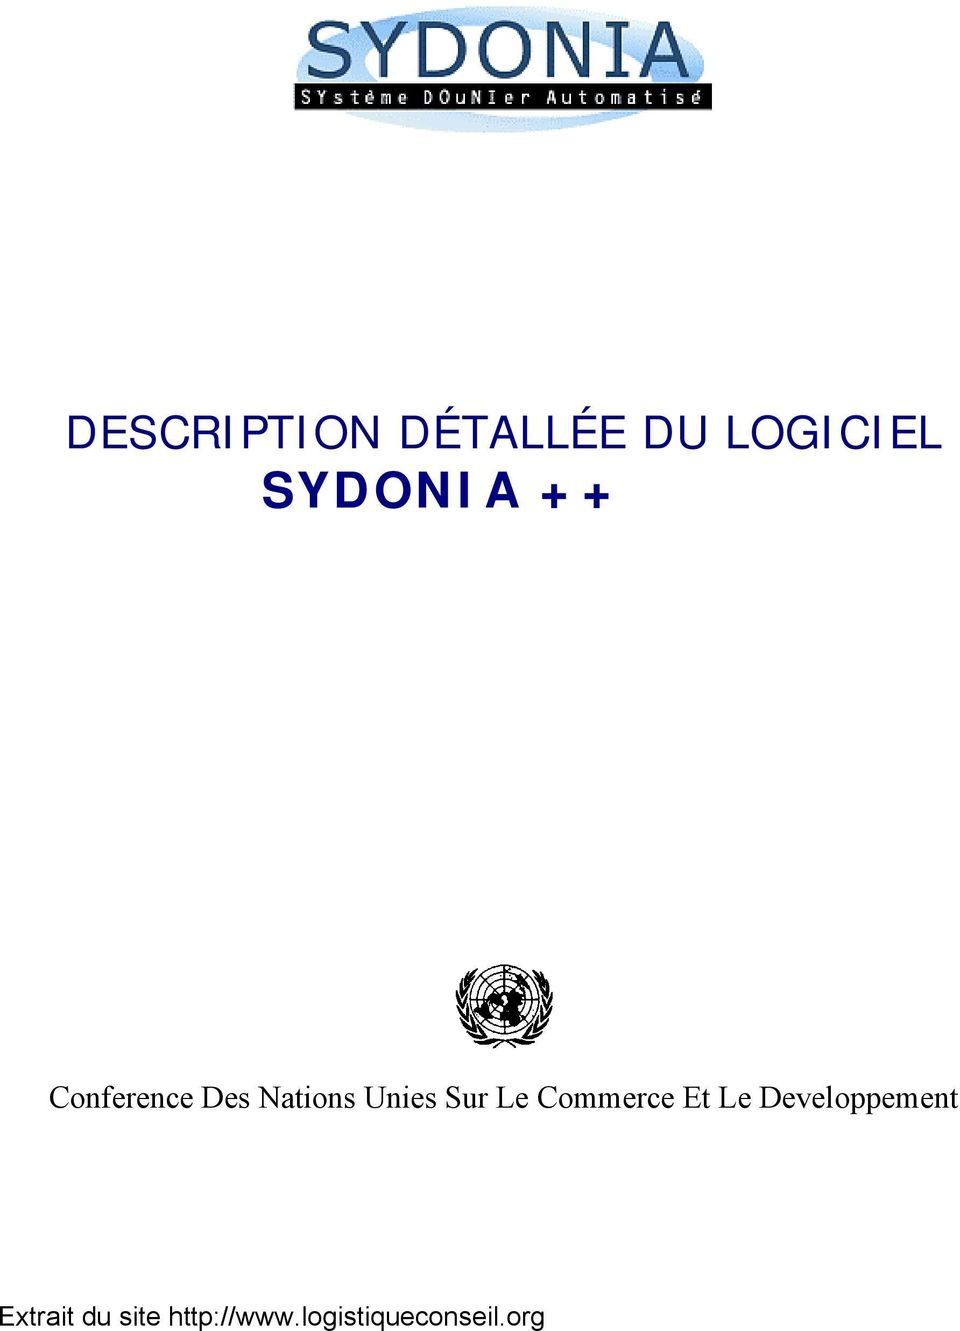 Conference Des Nations